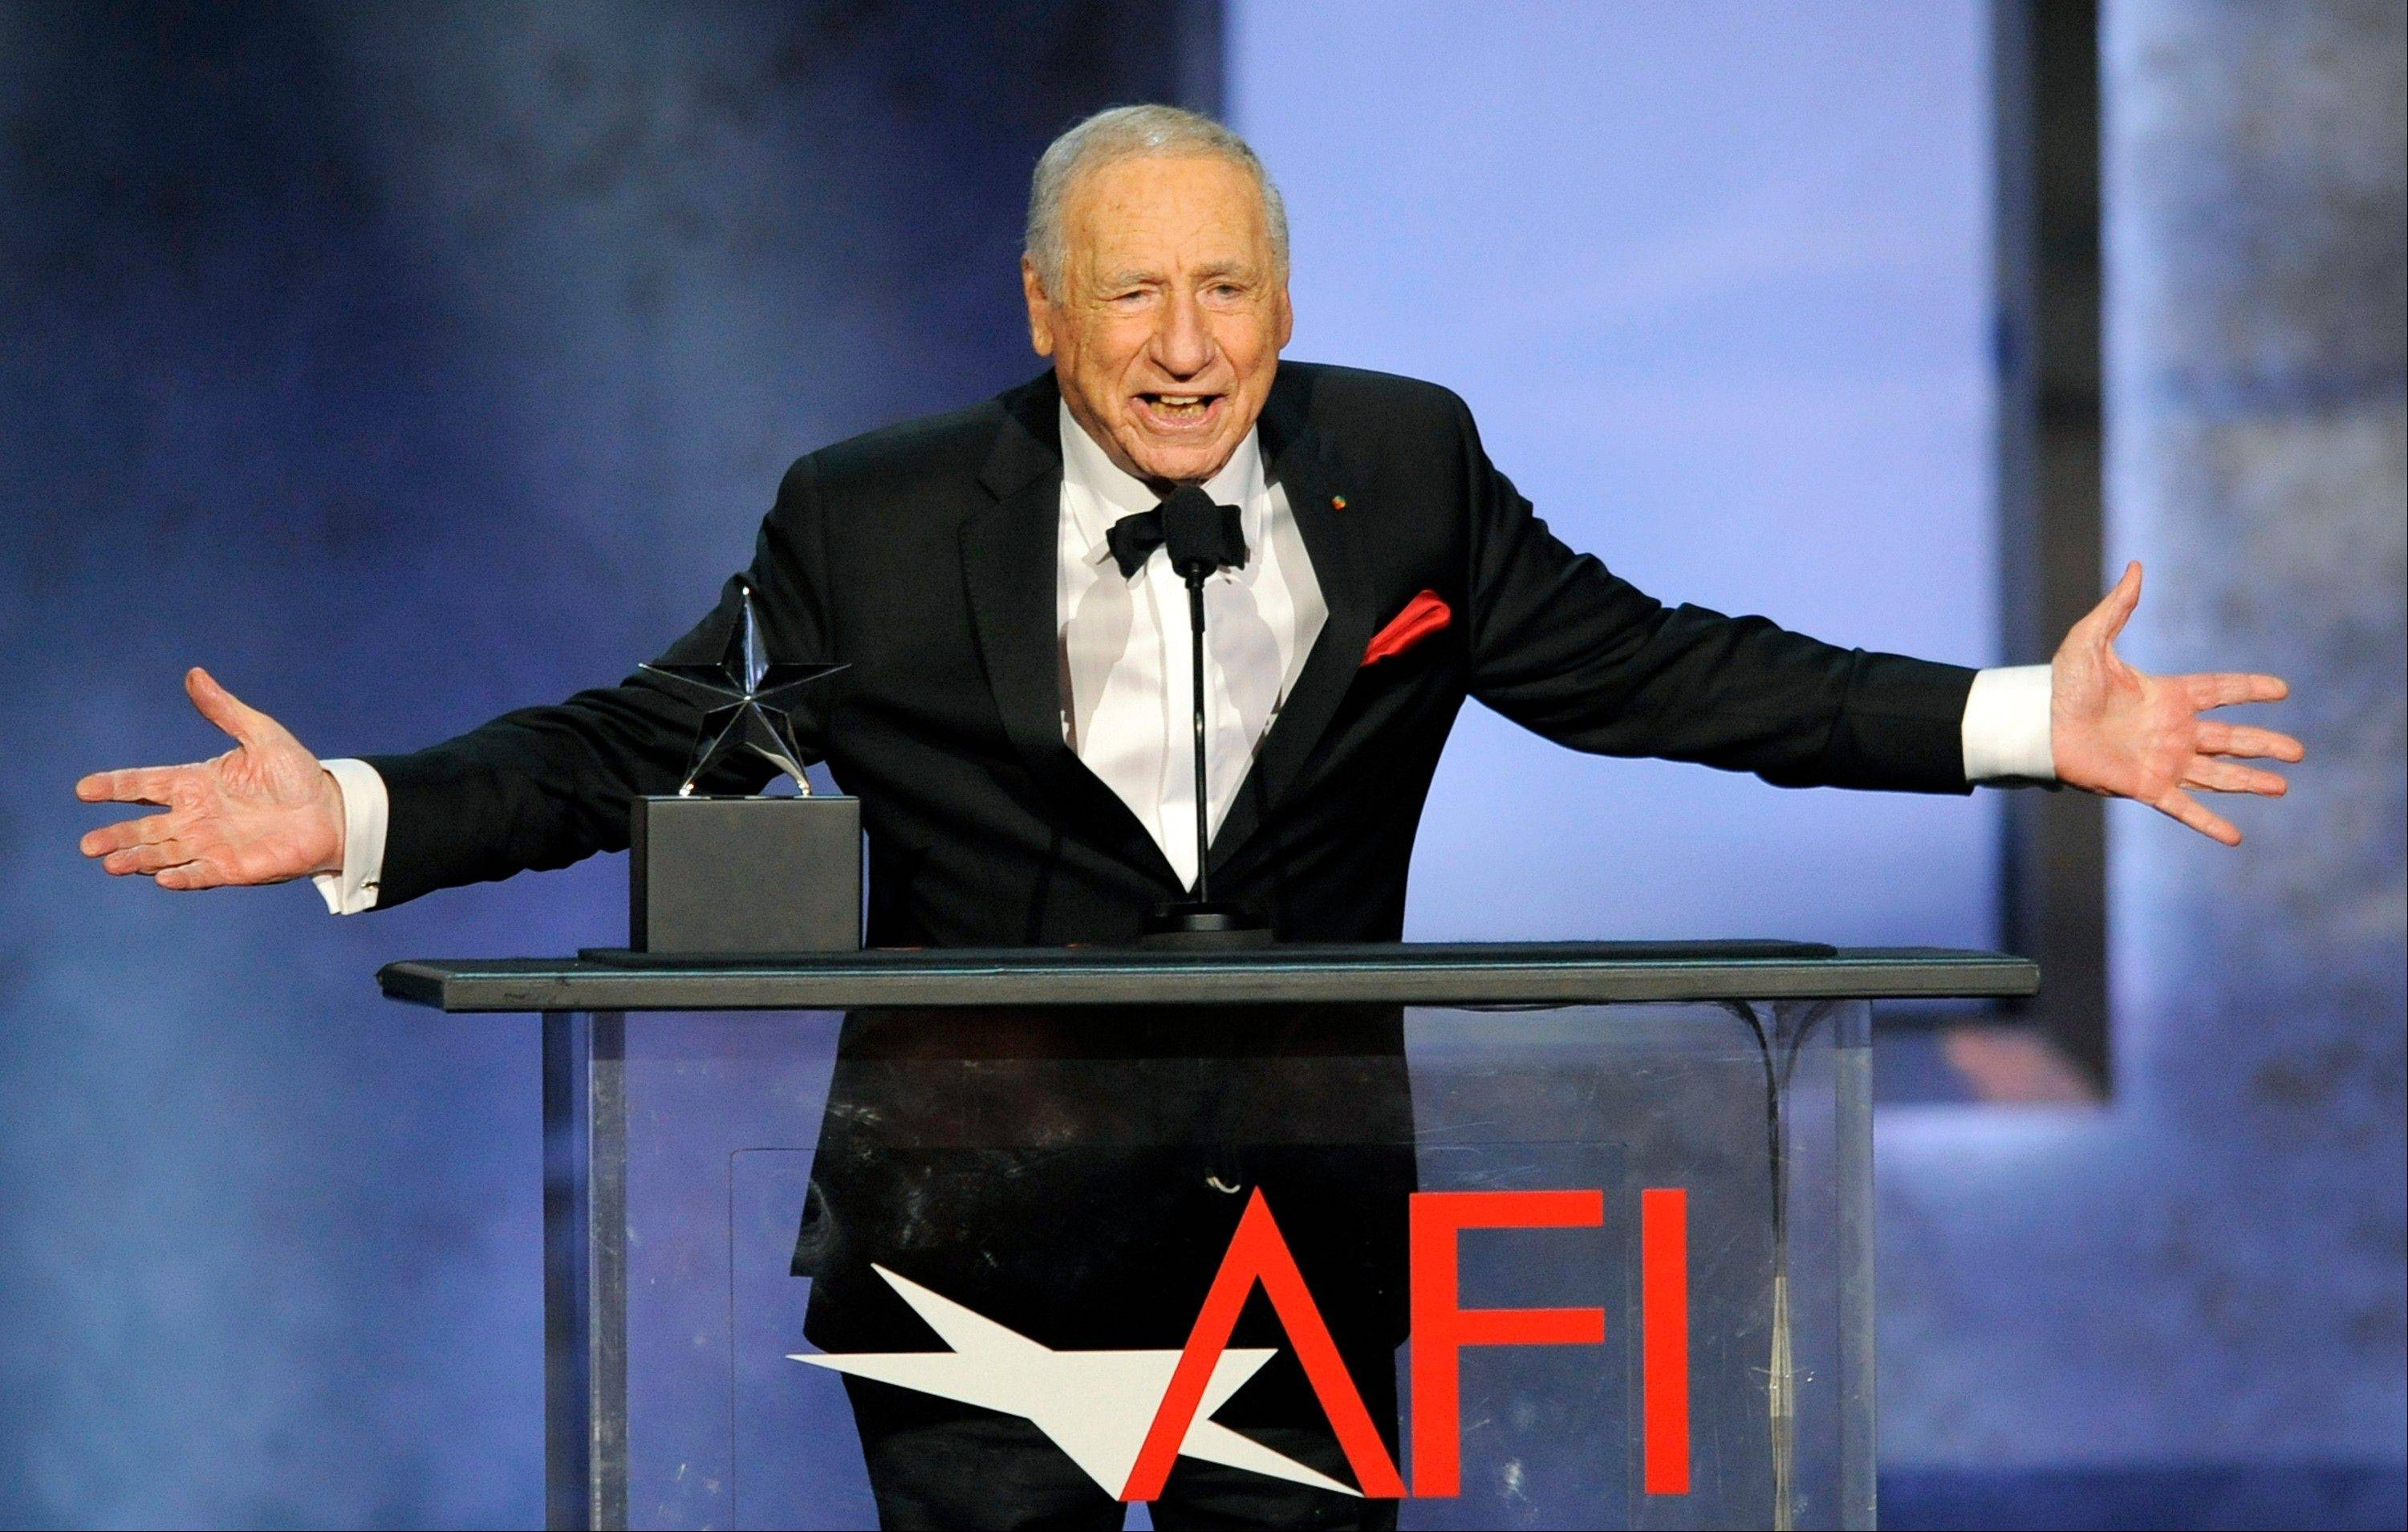 Honoree Mel Brooks addresses the audience during the American Film Institute�s 41st Lifetime Achievement Award Gala at the Dolby Theatre on Thursday in Los Angeles.